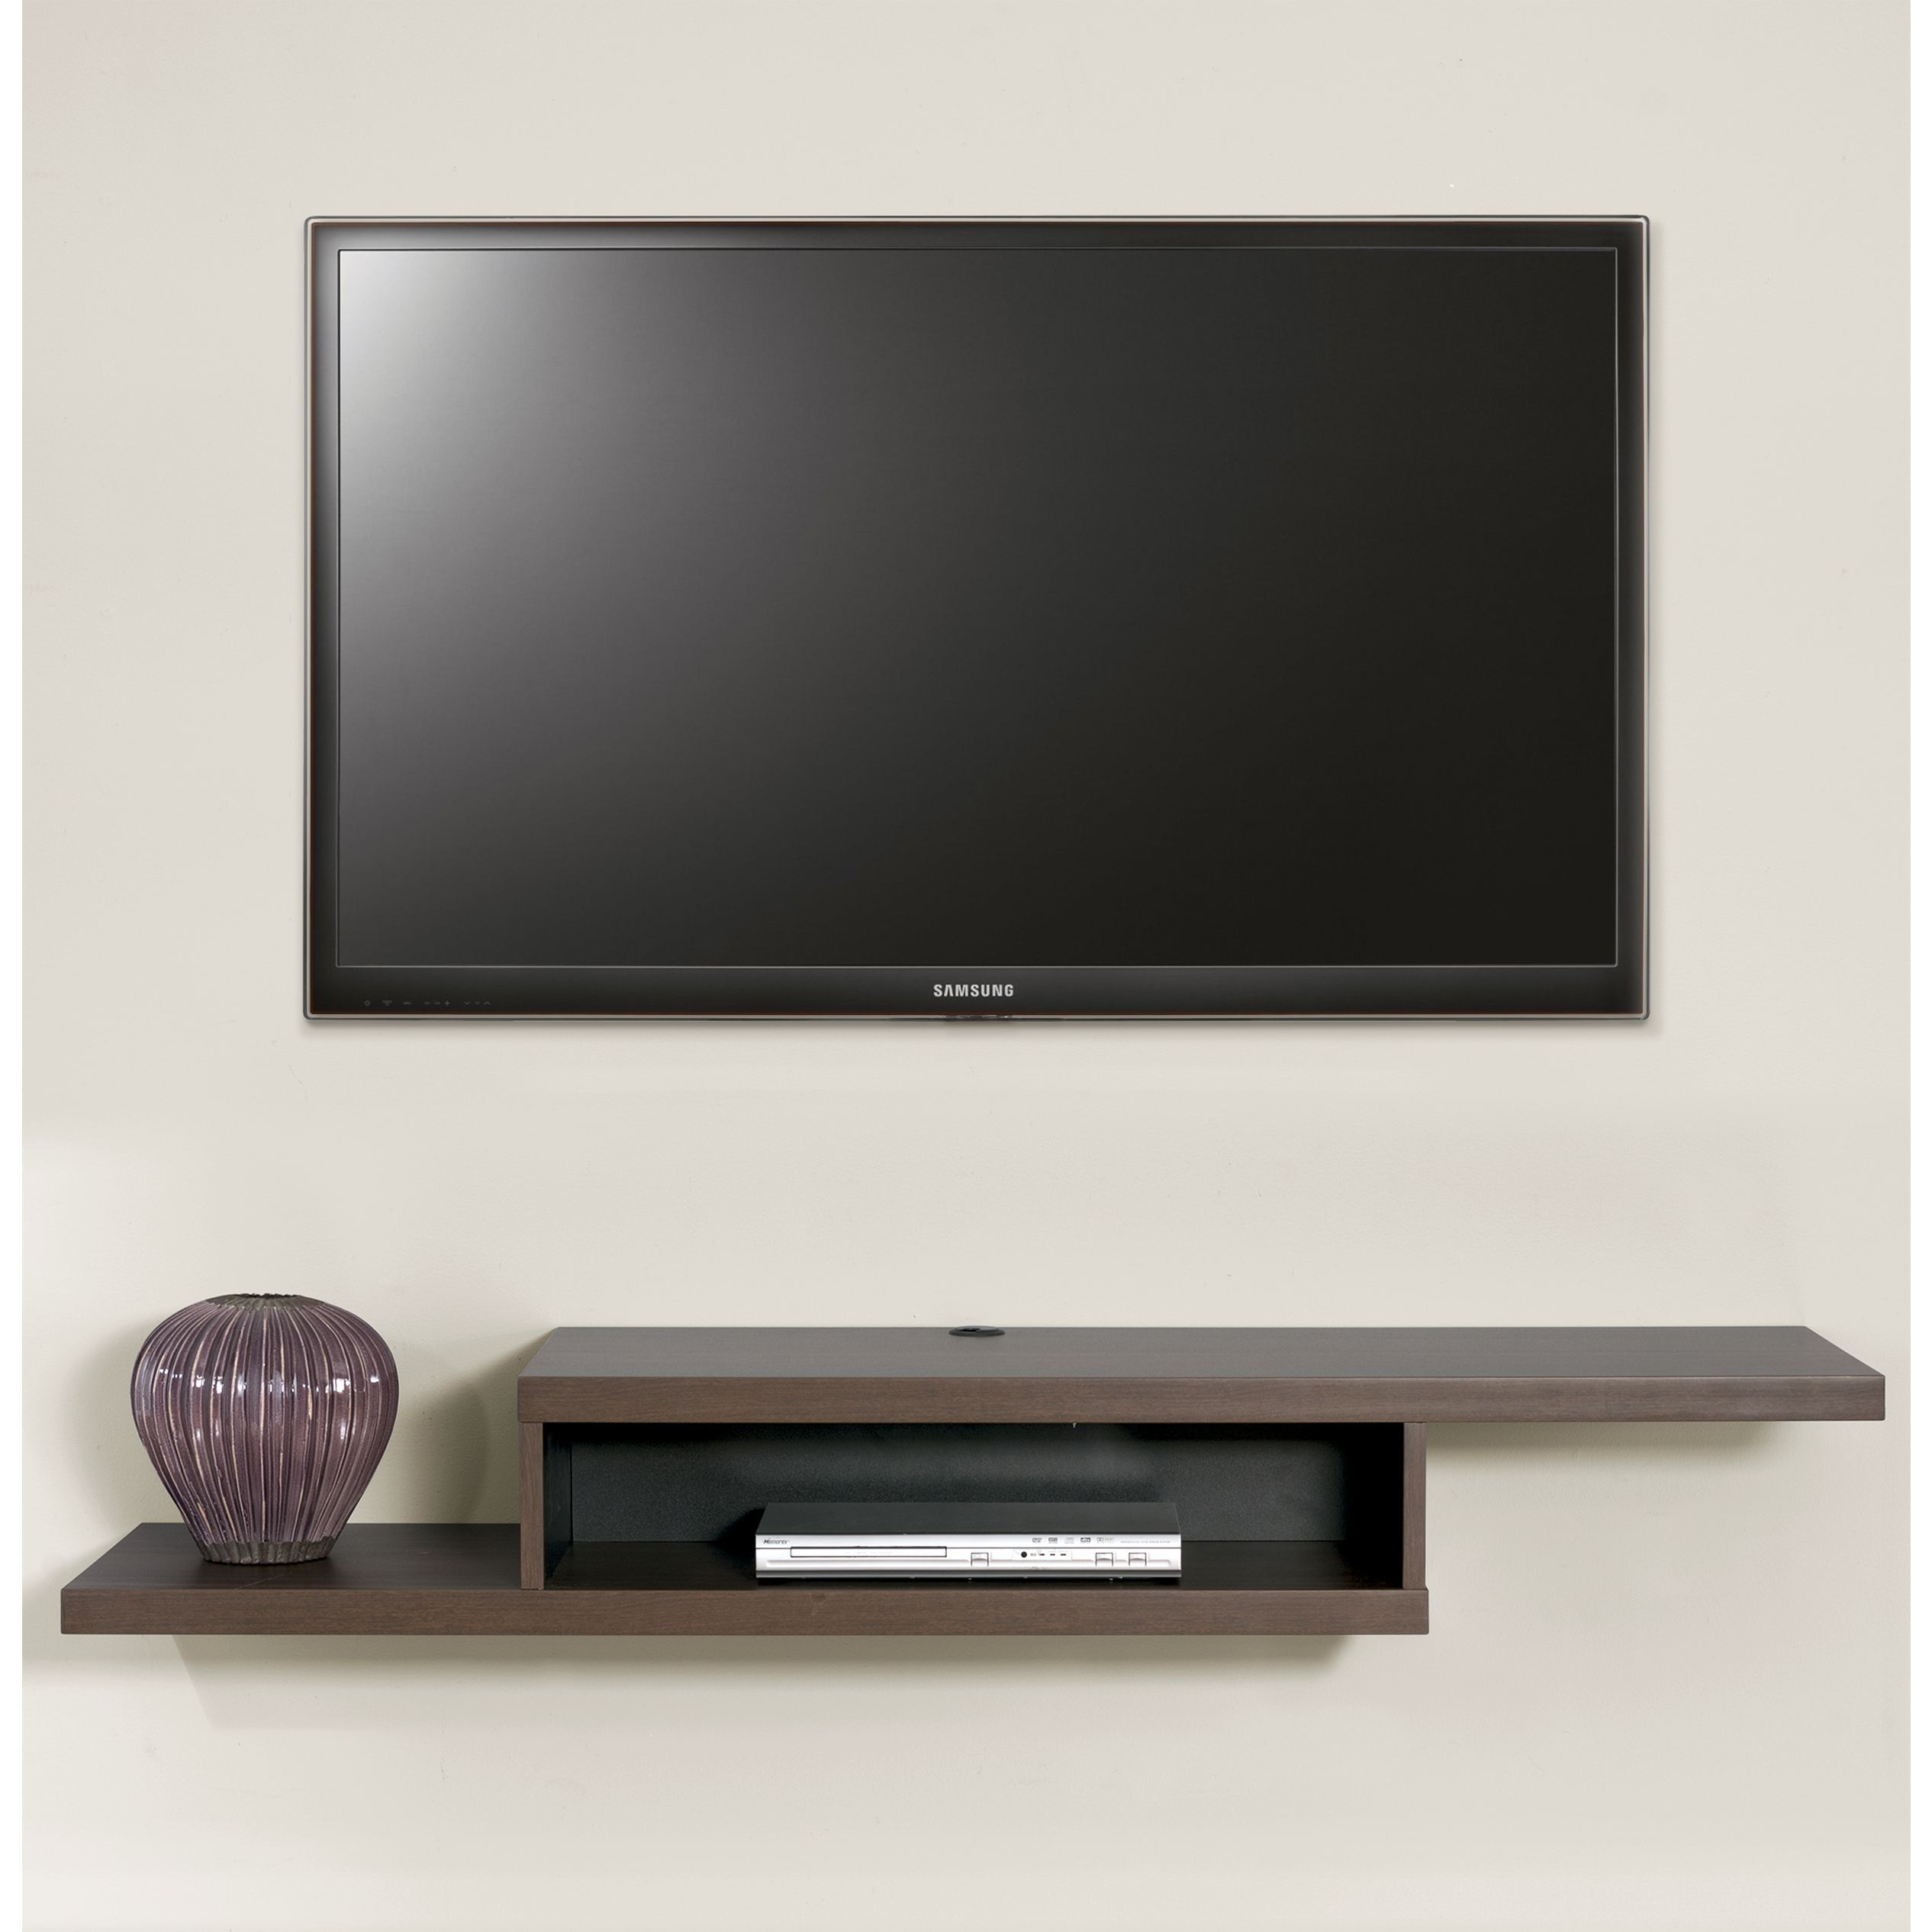 This Wall Mounted Tv Console Has A Modern Flair With The